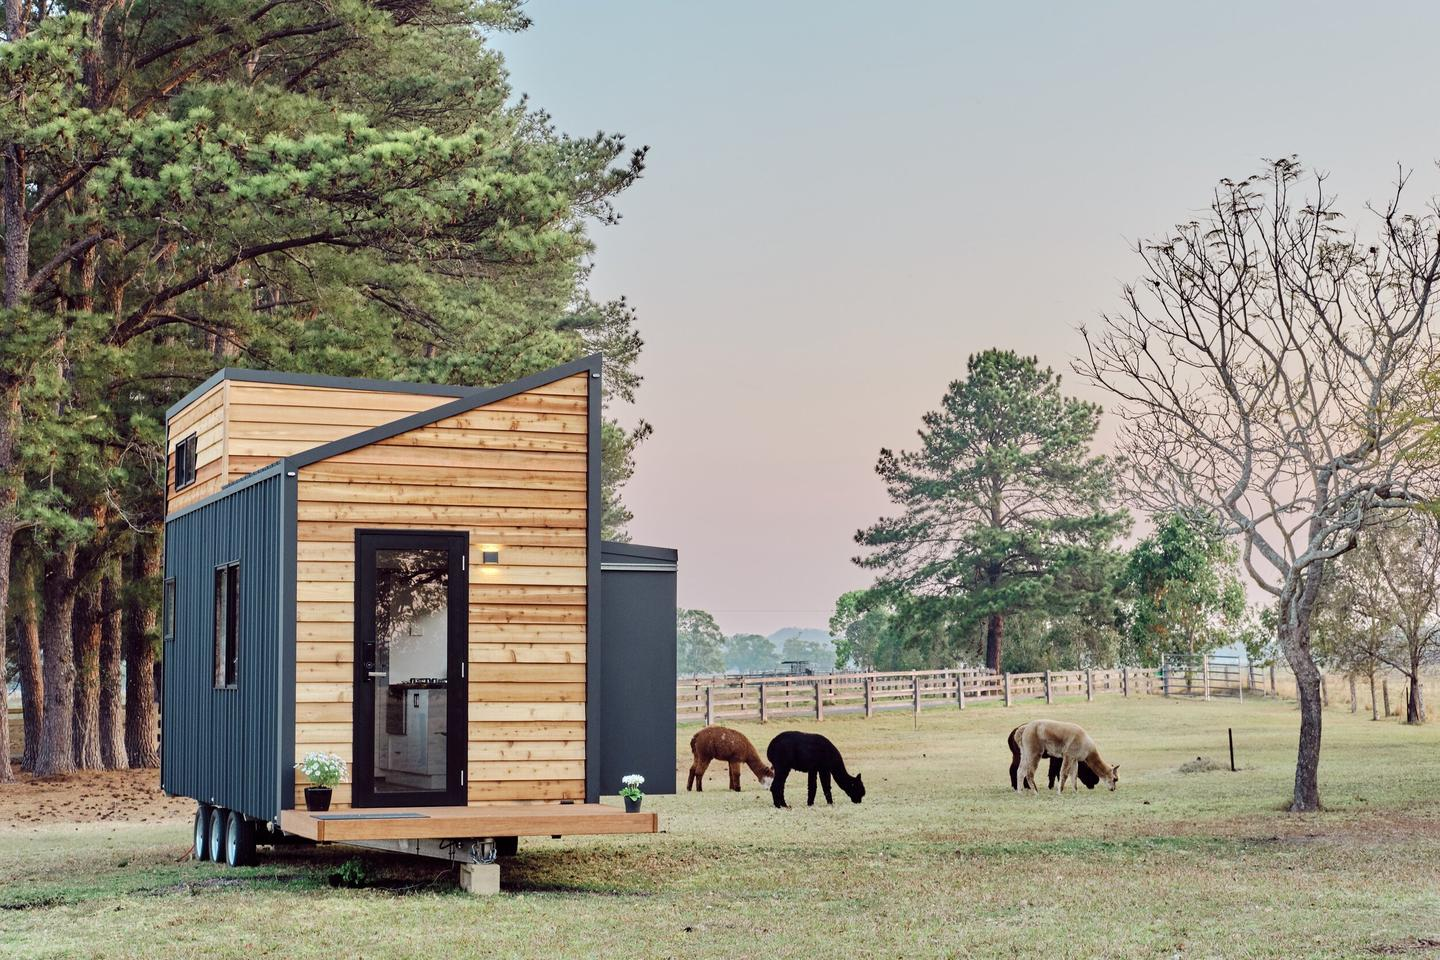 Australian tiny house builder Häuslein has added a couple of new models to its lineup, led by the compact Little Sojourner that uses a little creativity to offer owners some extra leg room